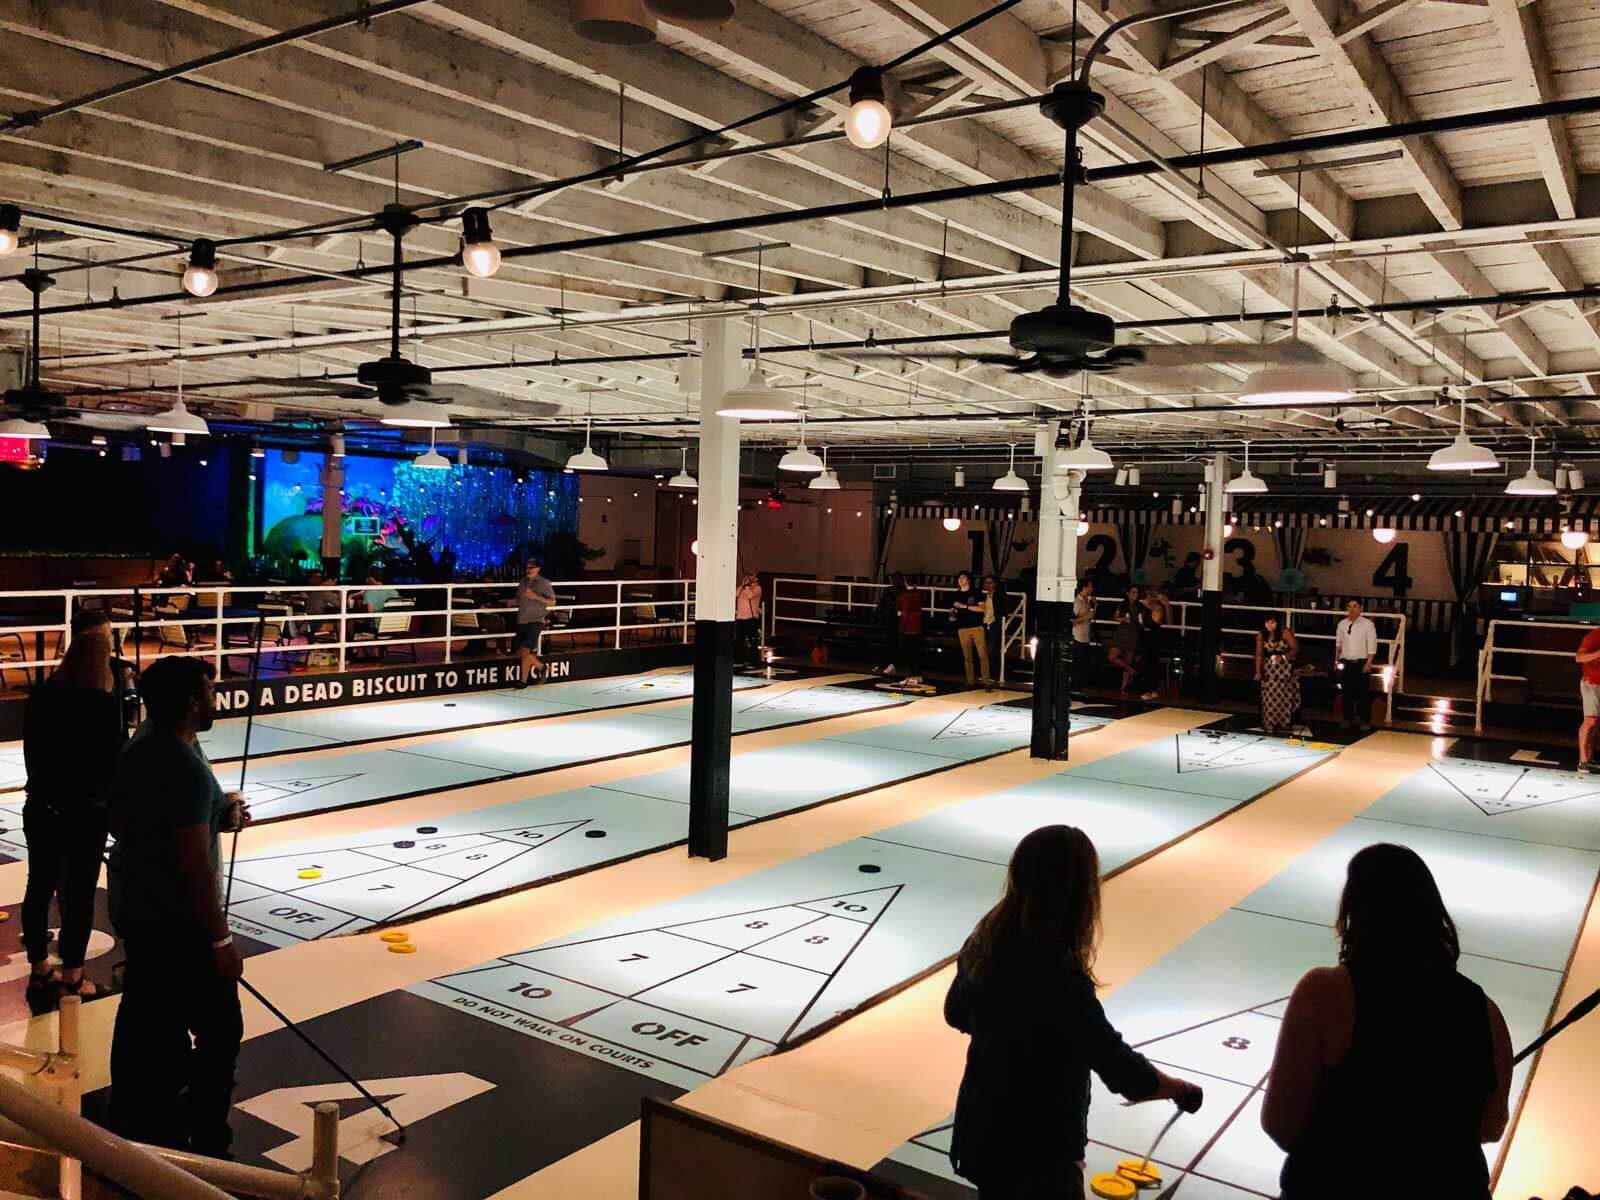 Royal-Palms-Shuffleboard-in-Gowanus-Brooklyn